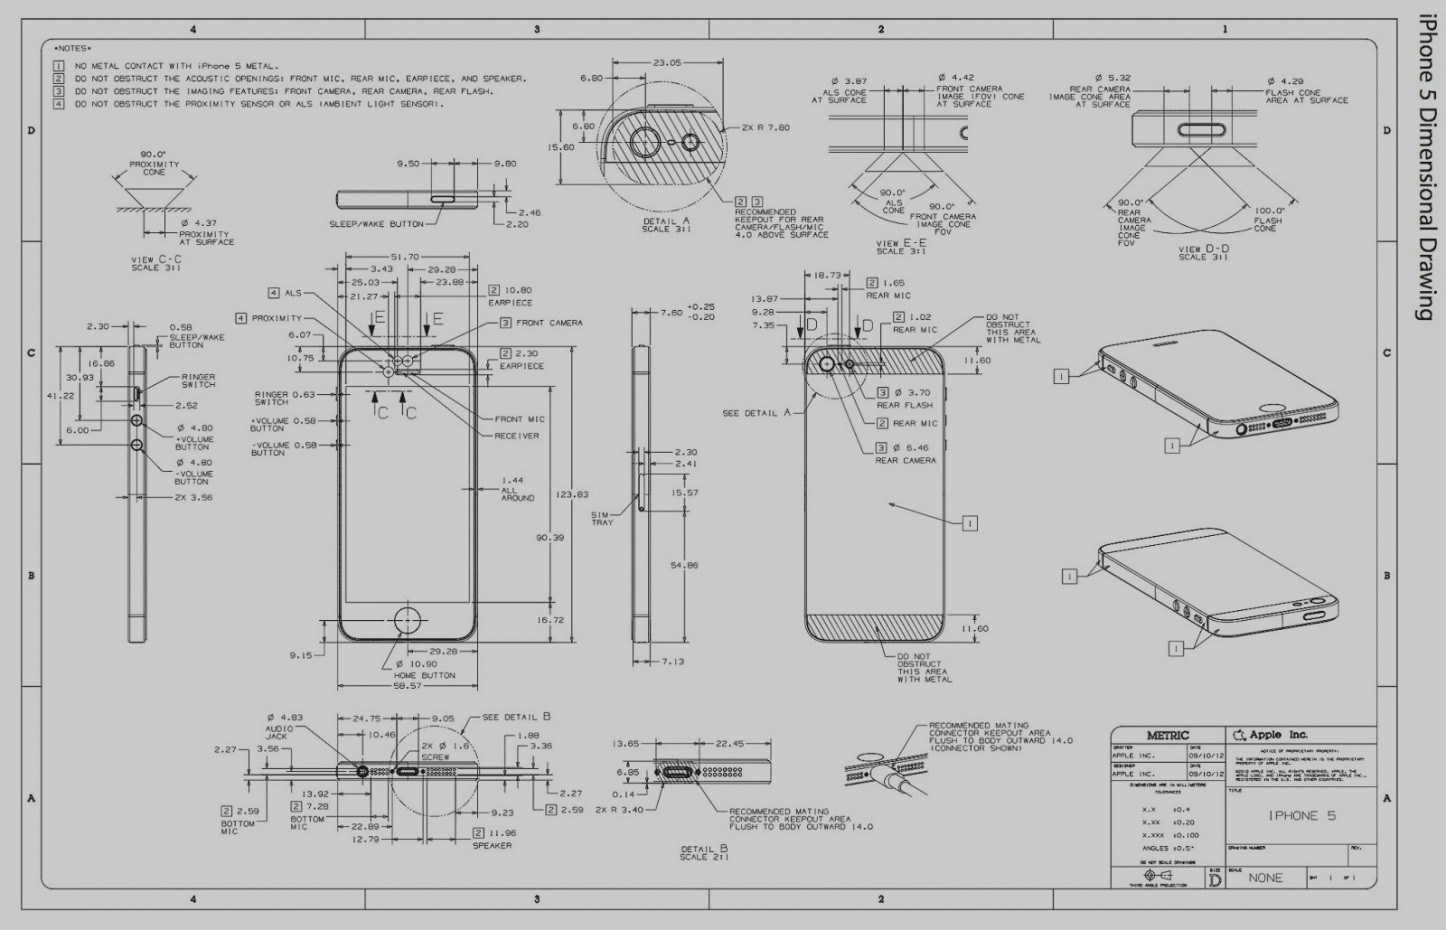 apple iphone 6 schematic diagram electrical wiring diagrams htc one circuit  diagram iphone 4 s circuit diagram